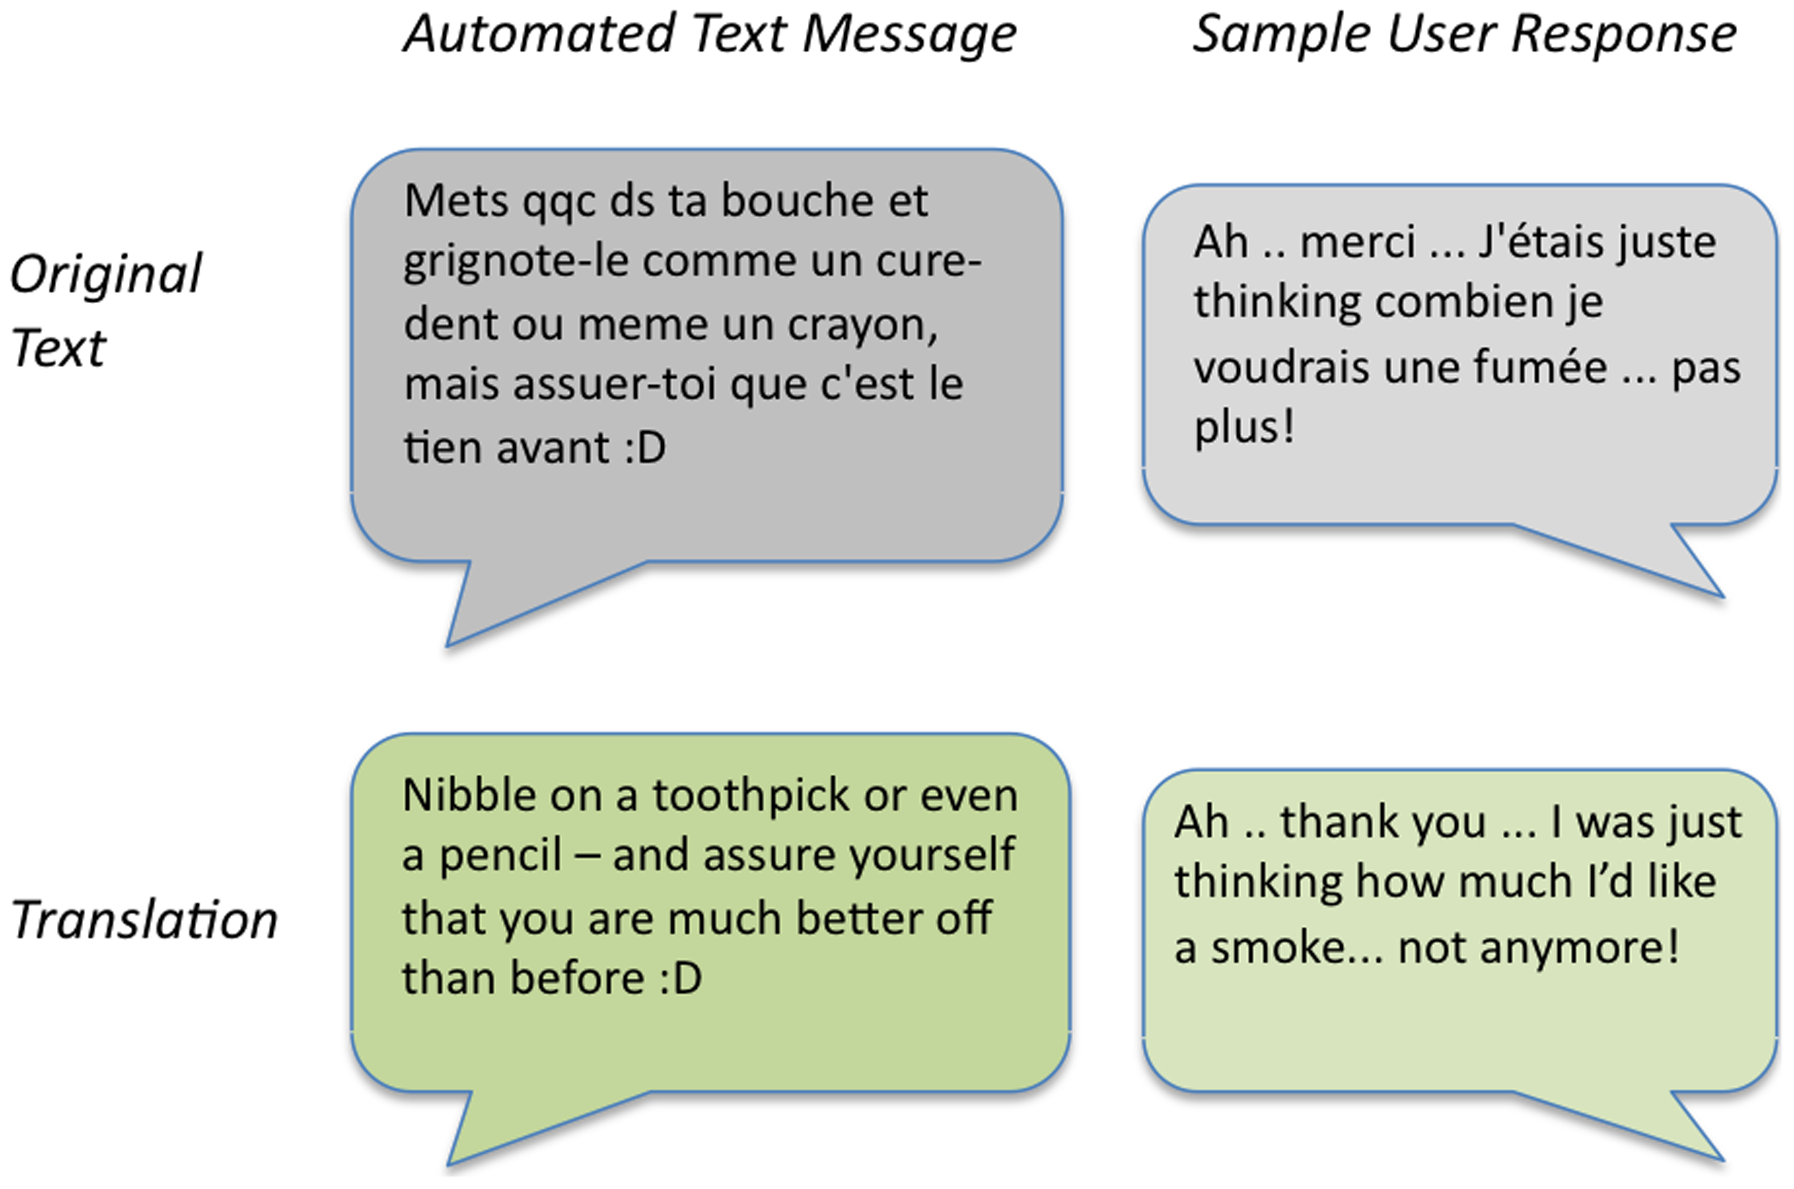 File:Text Messaging Used To Provide Encouragement To Quit Smoking.png - Free PNG Encouragement